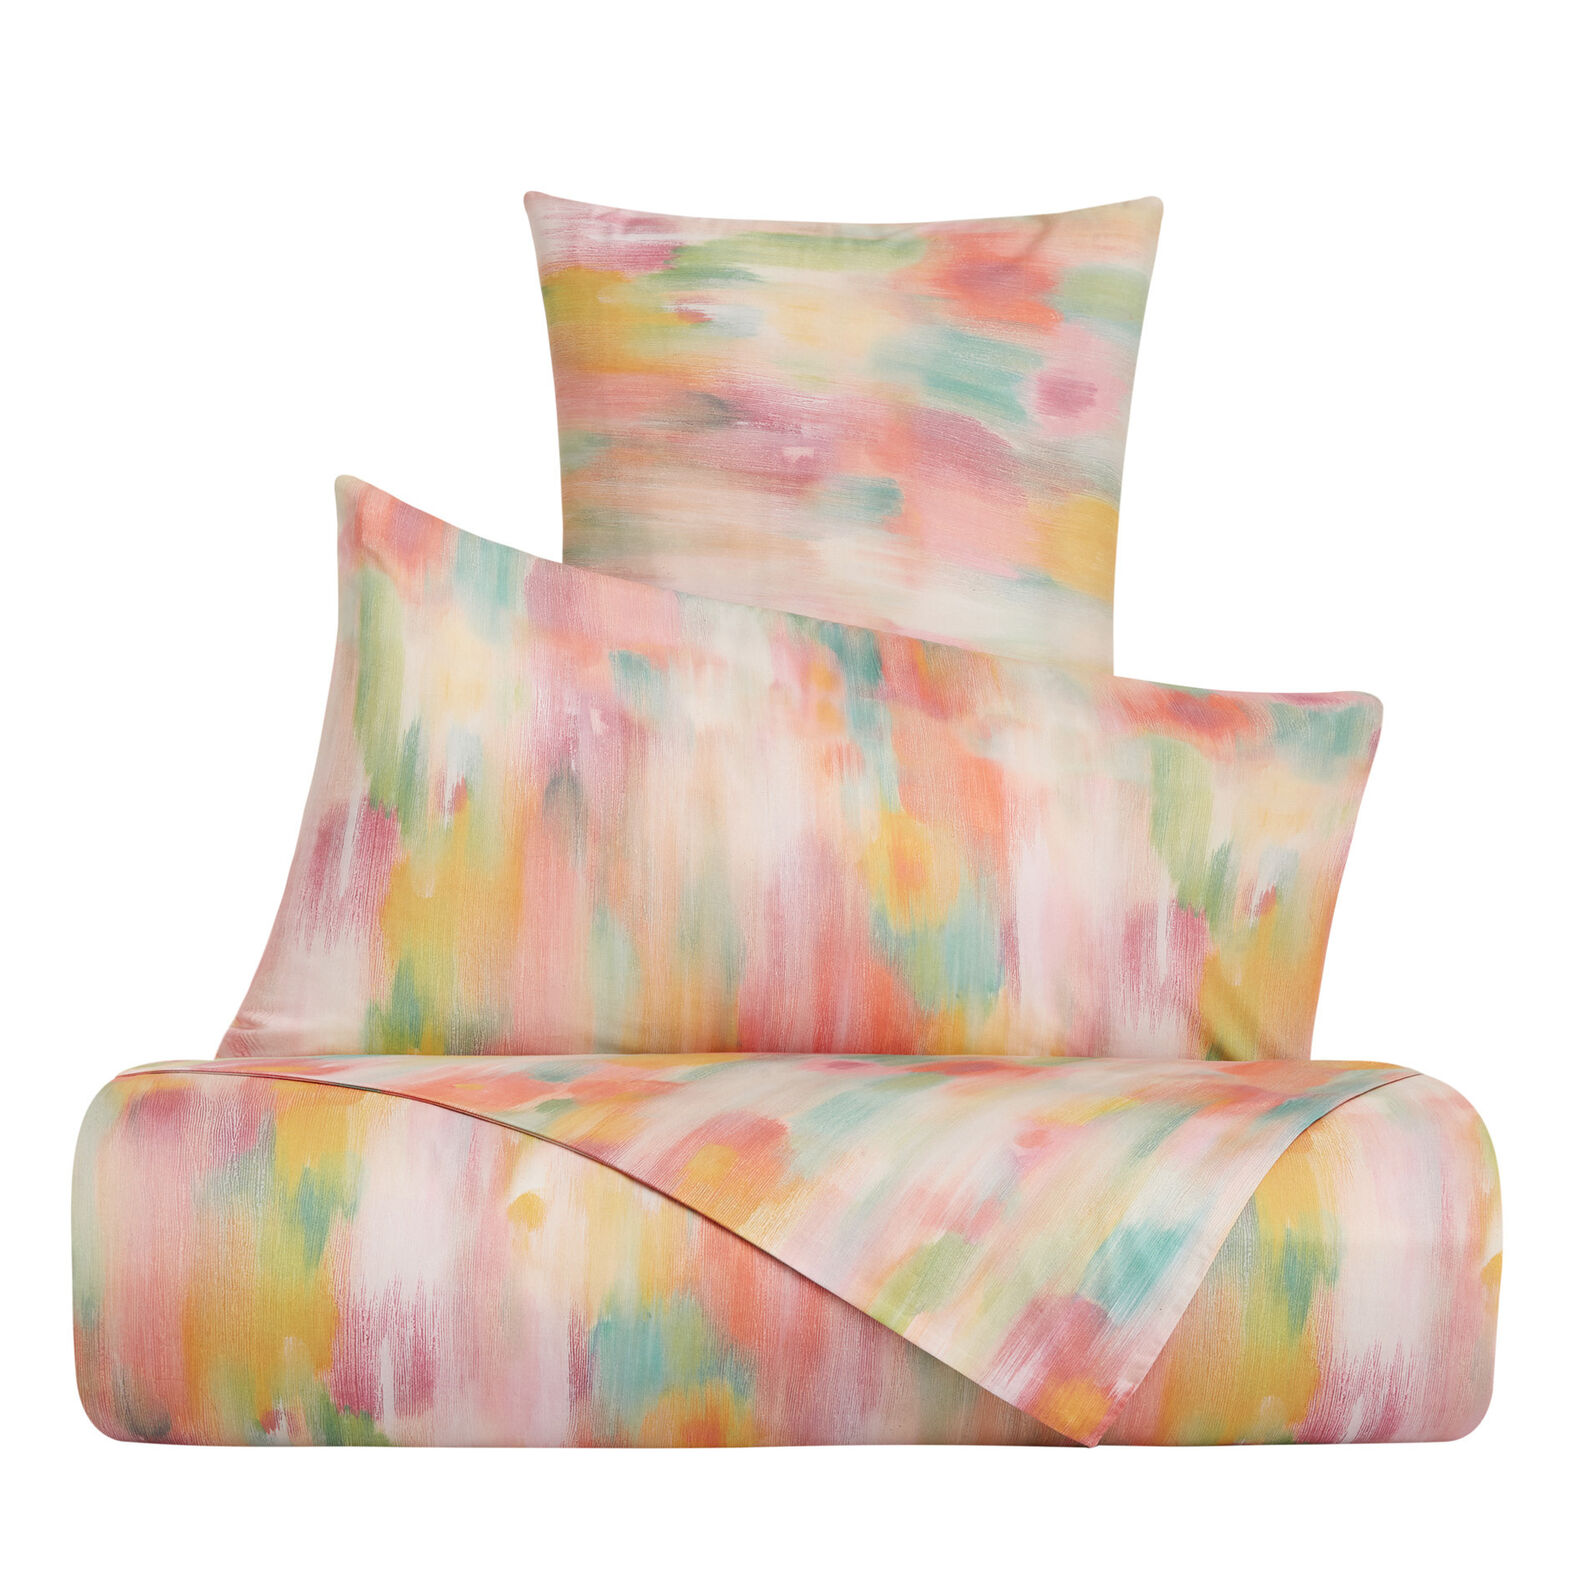 Cotton percale bed linen set with brush strokes pattern